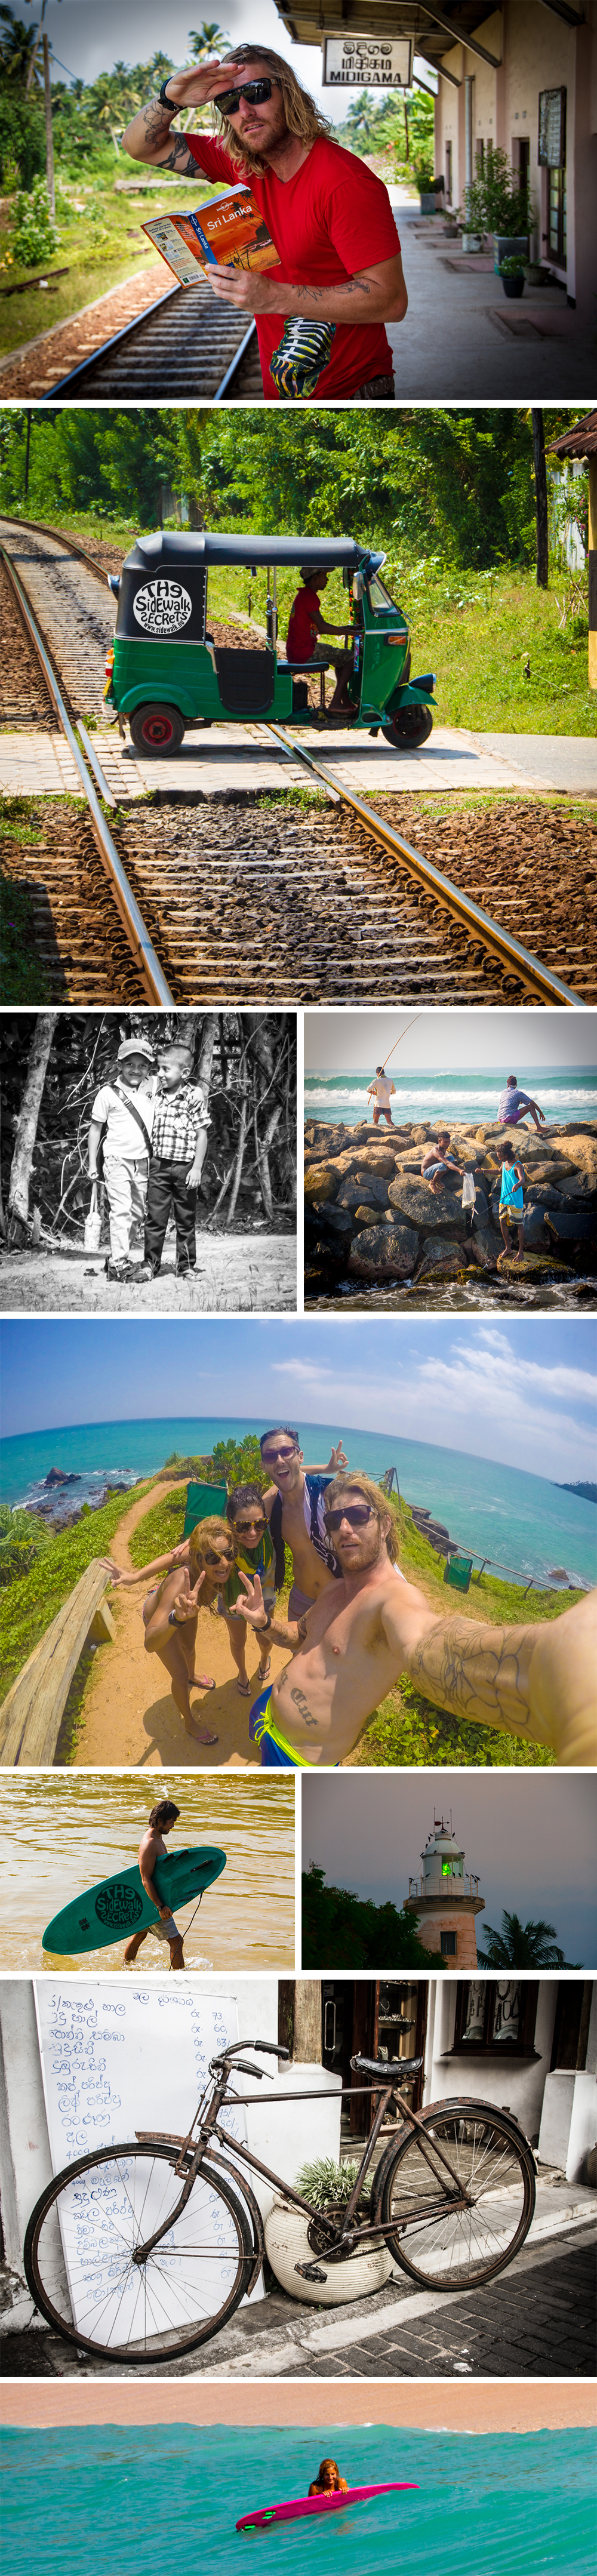 the-sidewalk-secrets-travel-blog-surf-sri-lanka-midigama-mirissa-surfing-1100